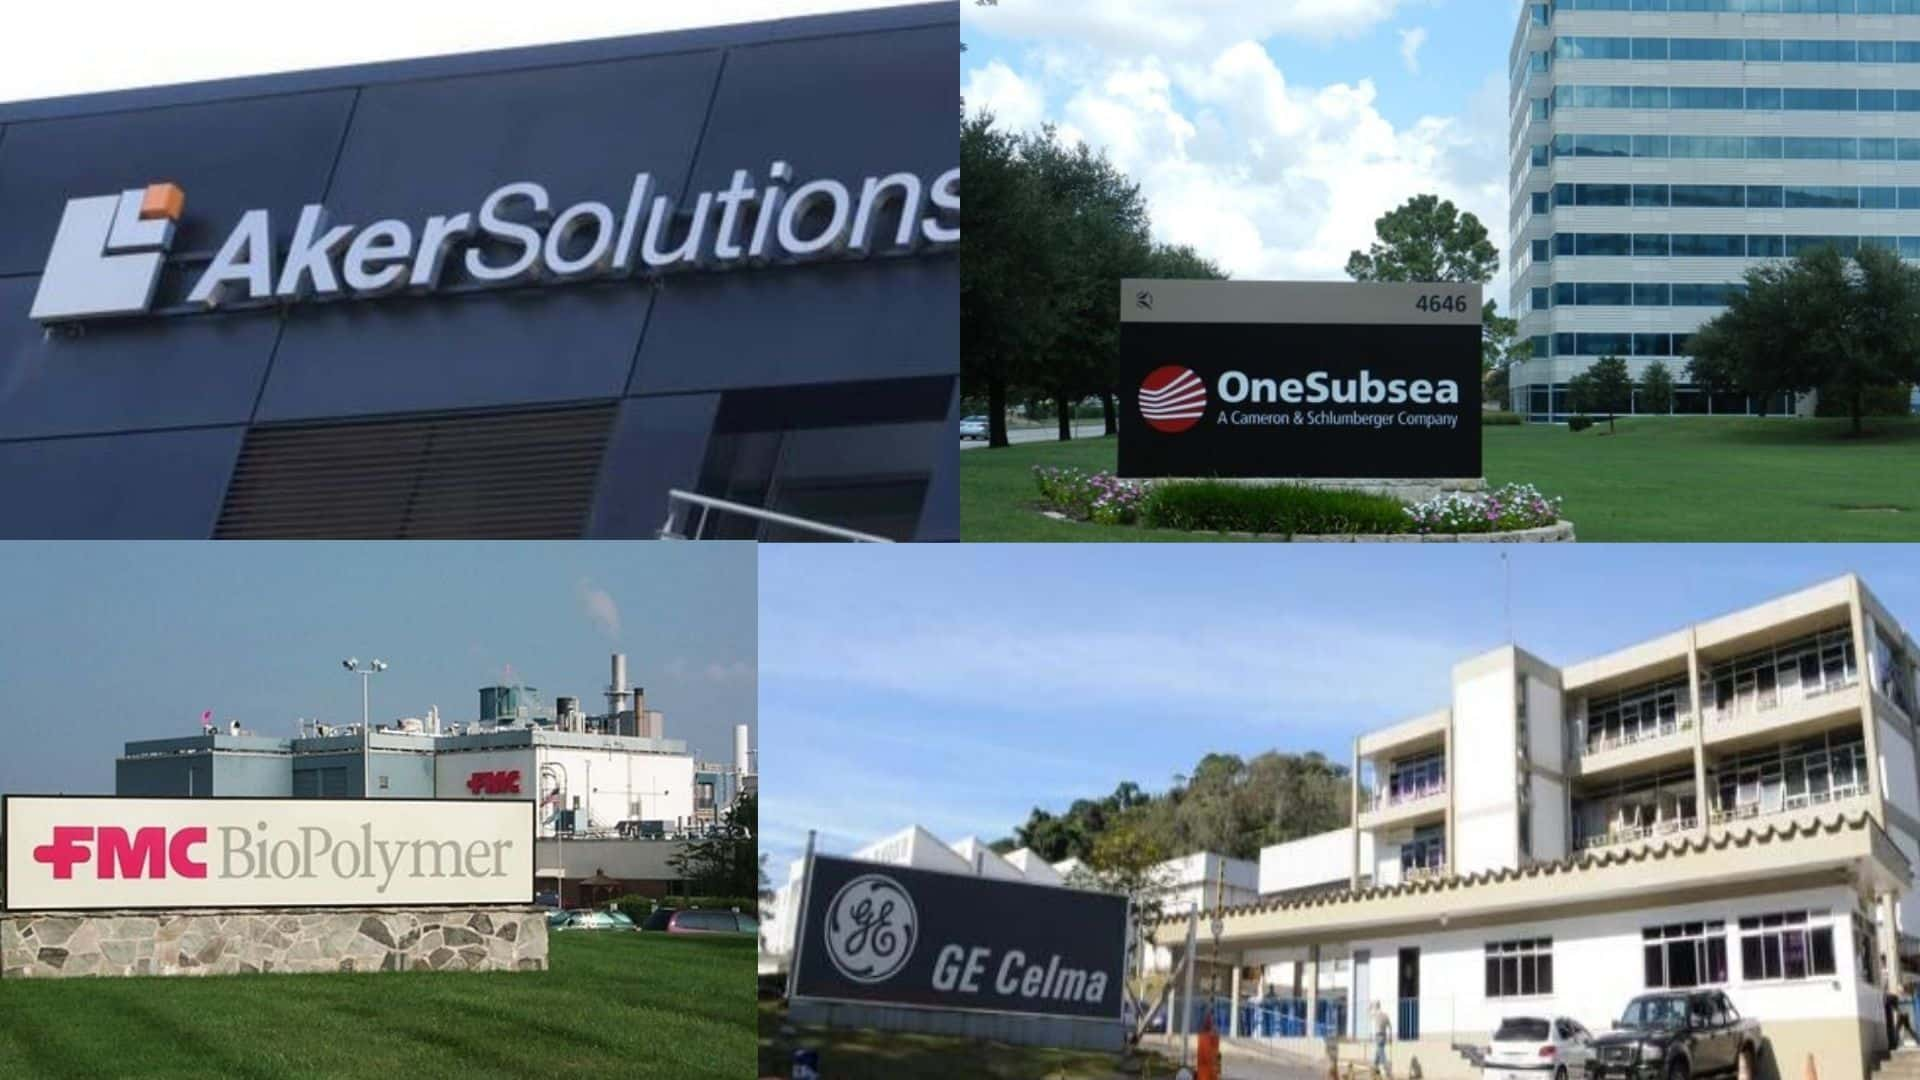 FC Corporarion, AKER SOLUTIONS, GE CELMA, ONESUBUA,